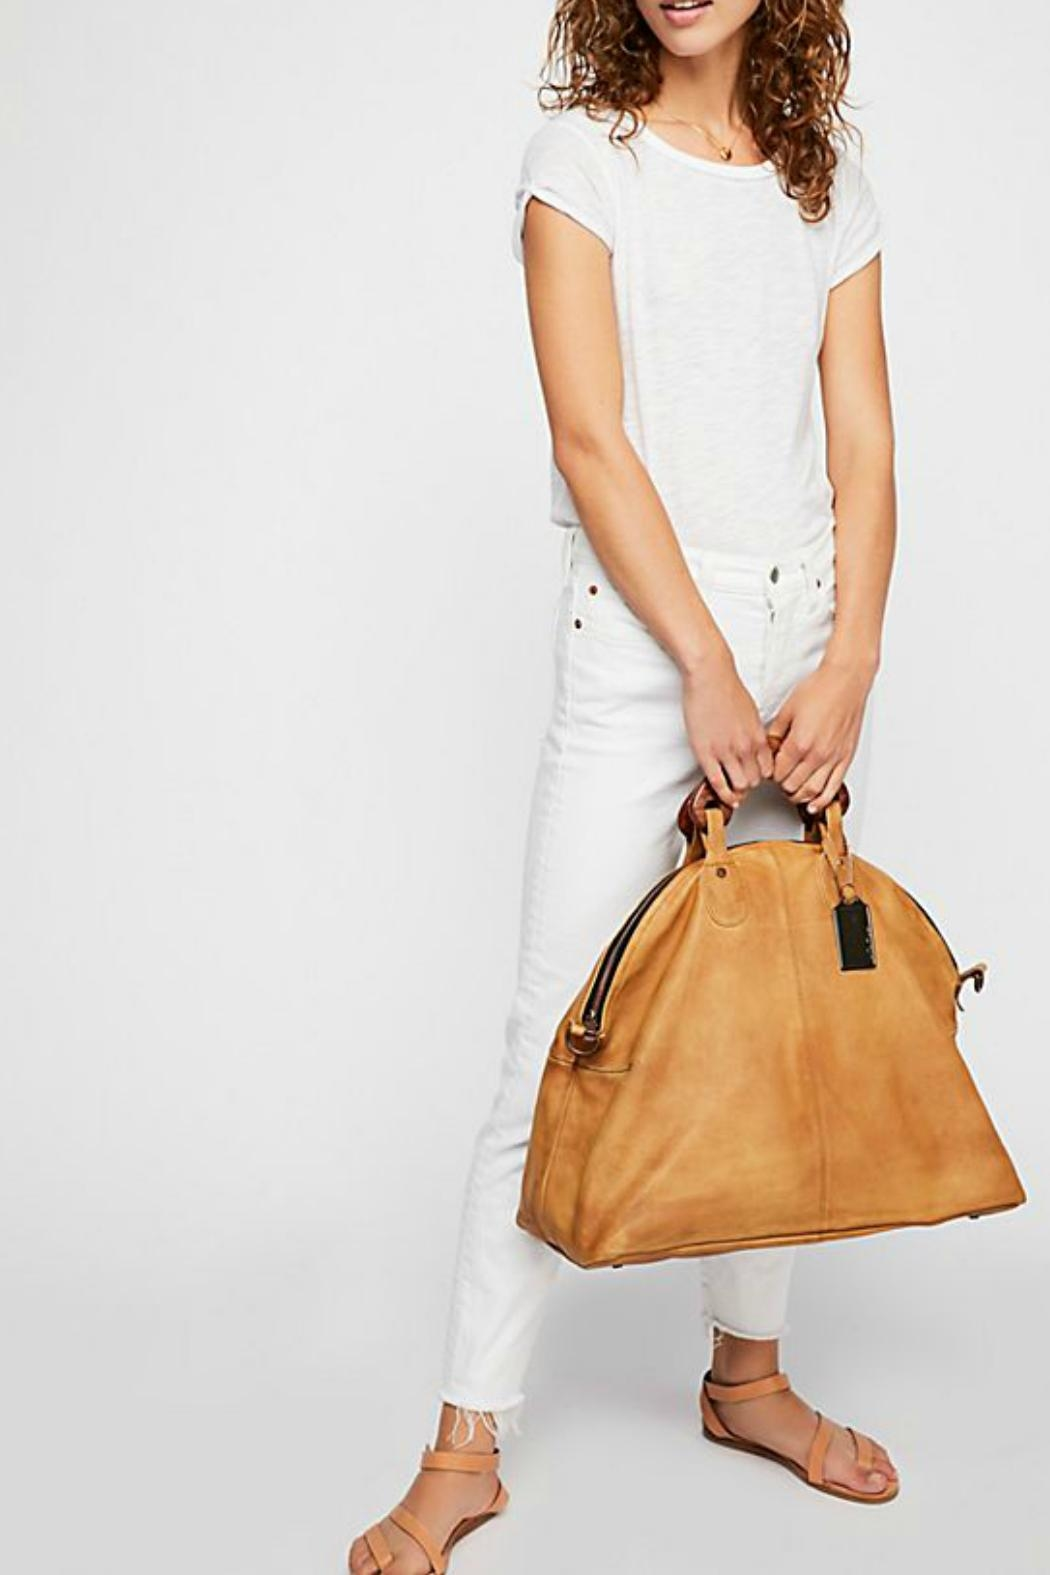 4118a8d95382 Free People Willow Vintage Tote from Canada by Blue Sky Fashions ...